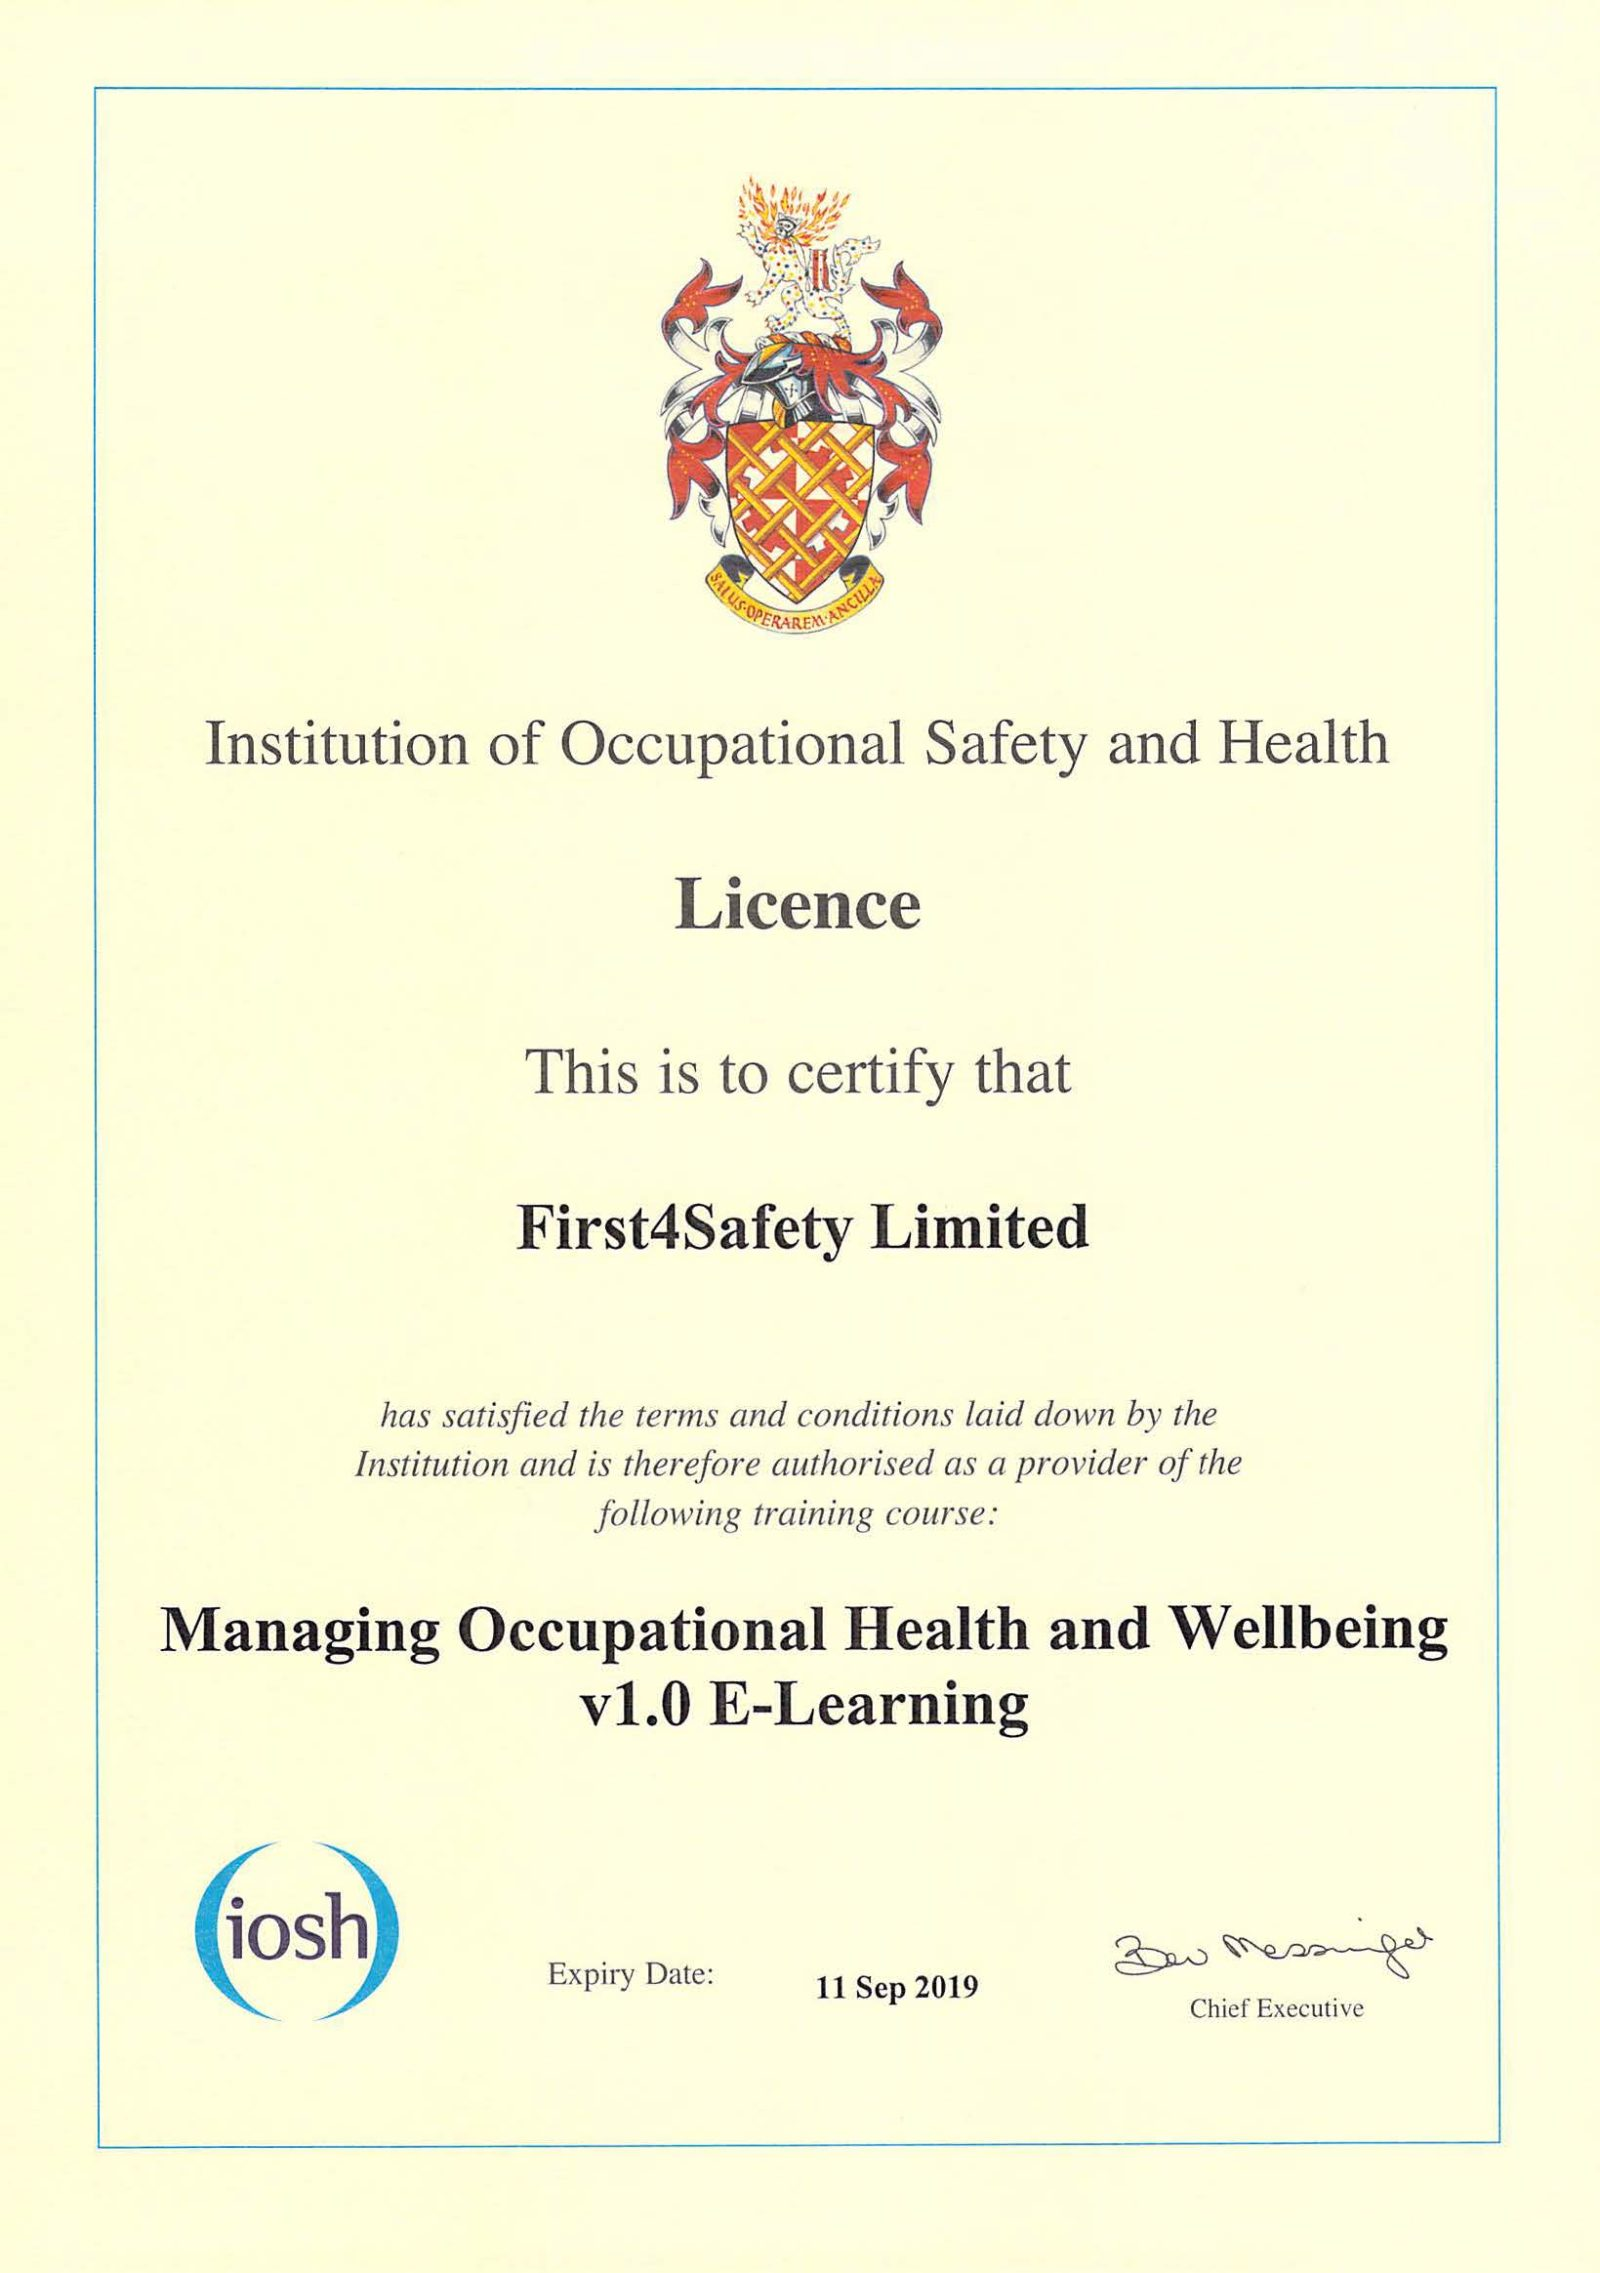 Occupational Health and Wellbeing